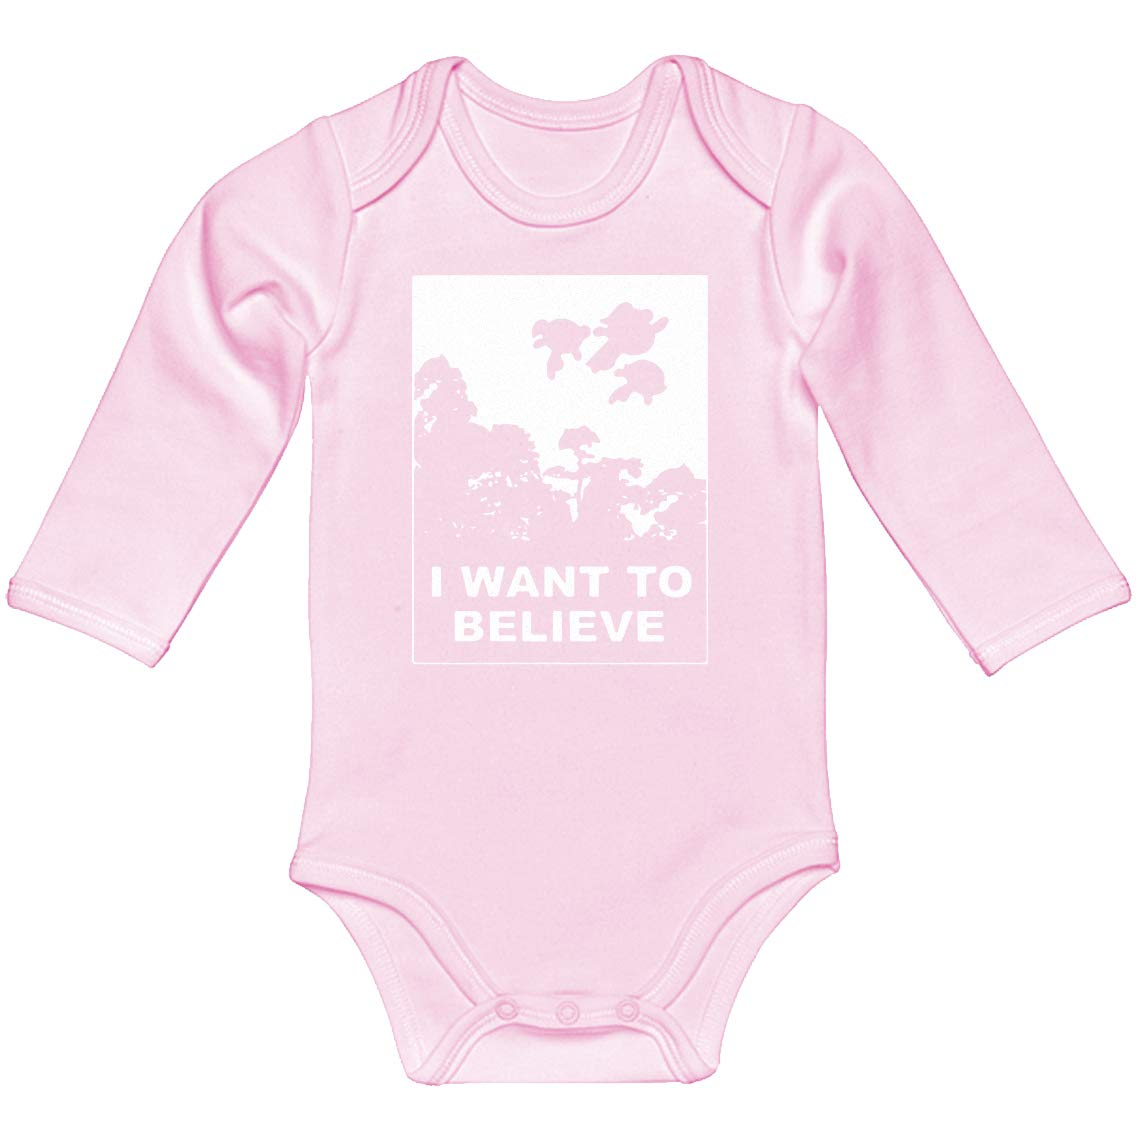 Indica Plateau Baby Romper I Want to Believe Super Girls 100/% Cotton Long Sleeve Infant Bodysuit